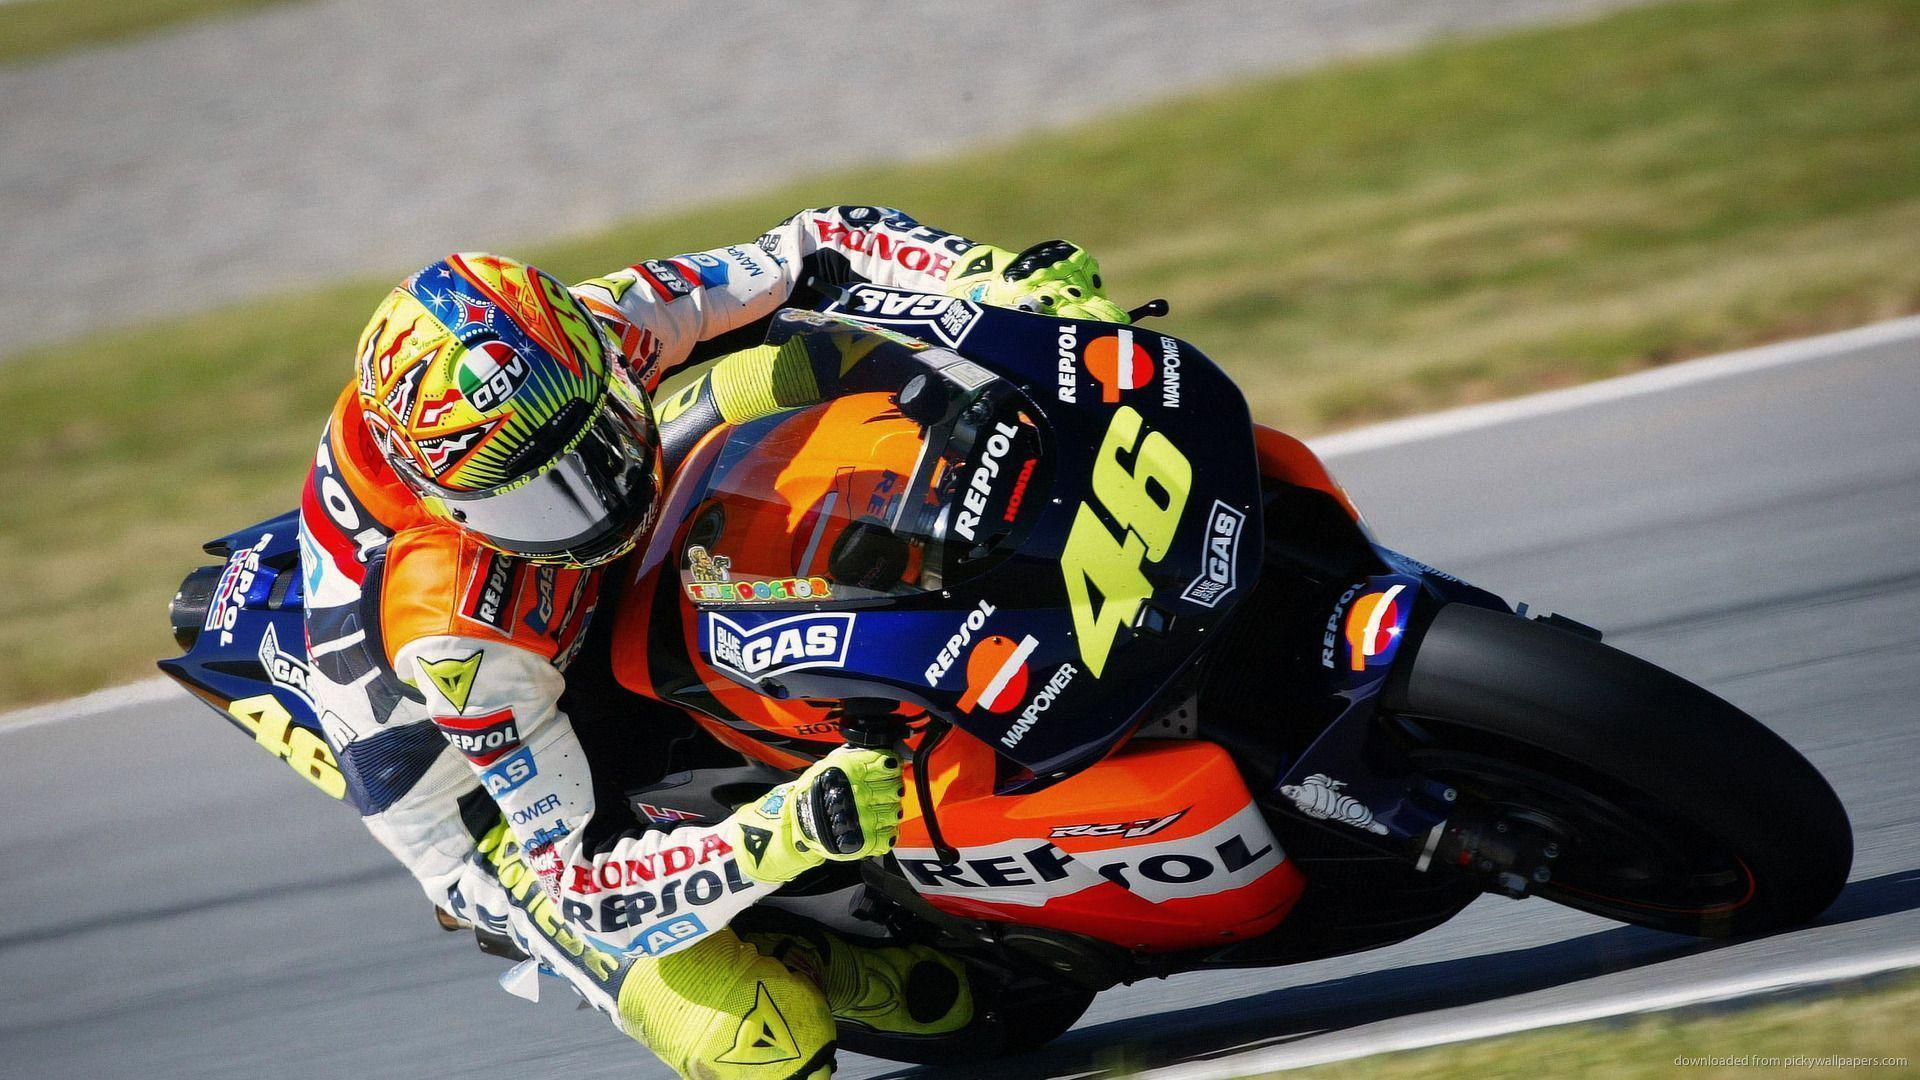 Download 1920x1080 Valentino Rossi Wallpapers